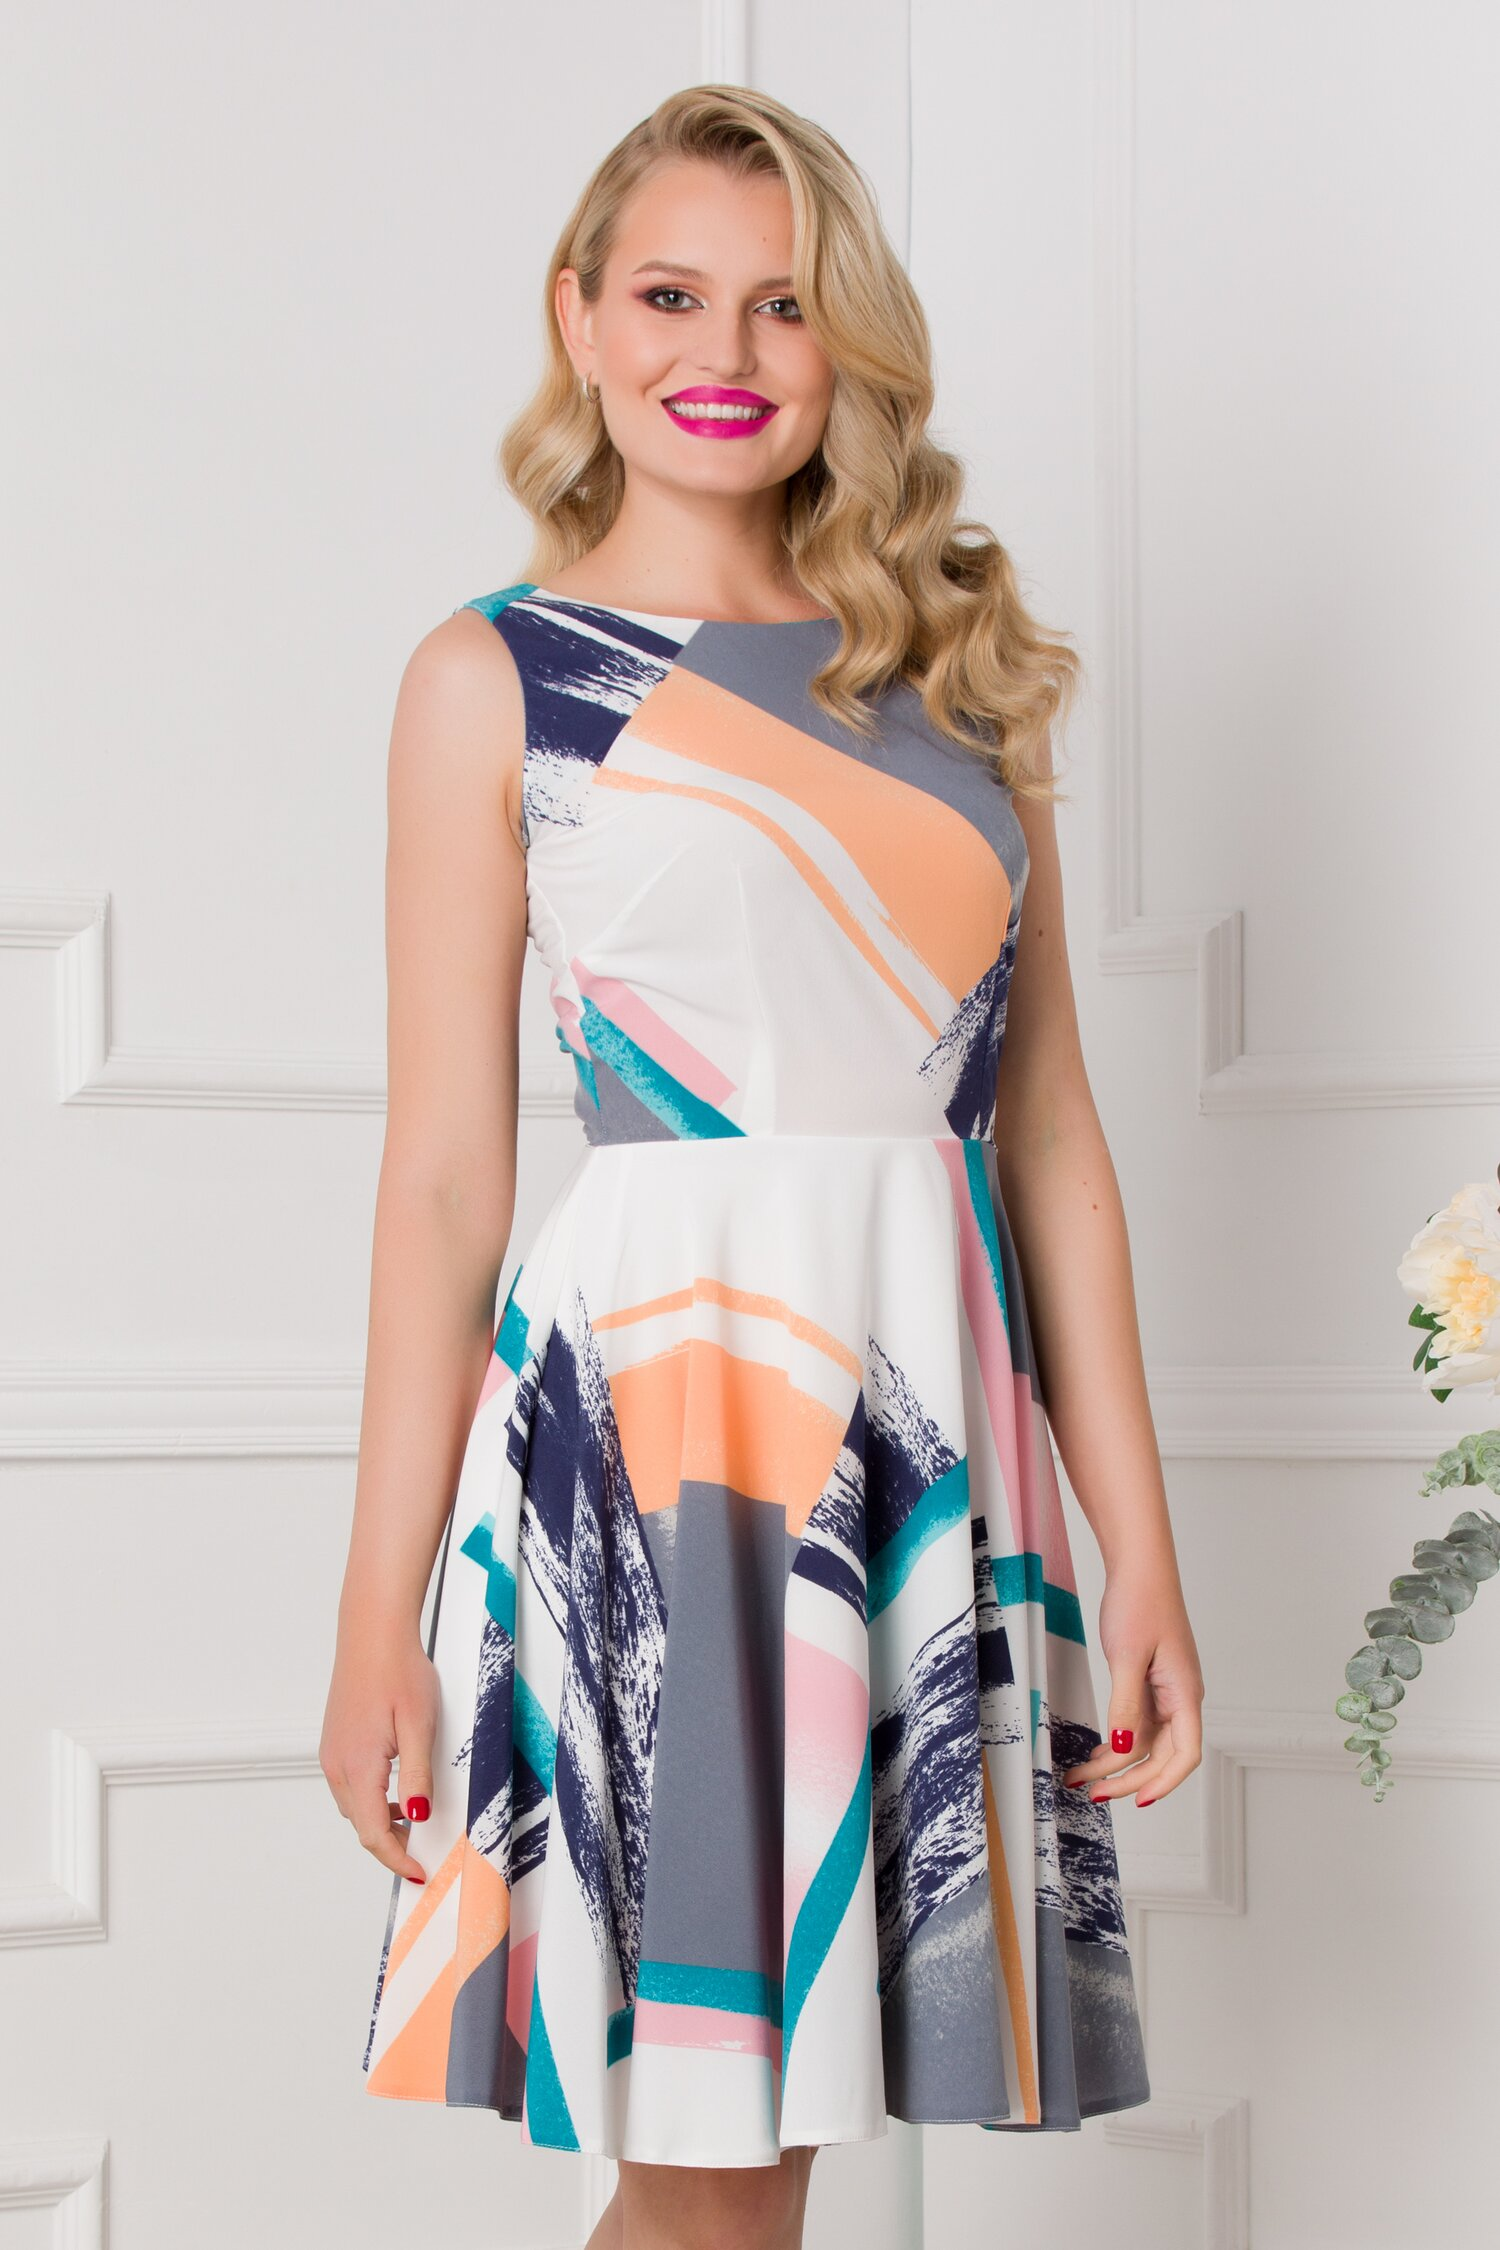 Rochie Lorena ivoire cu imprimeu abstract in nuante pastelate